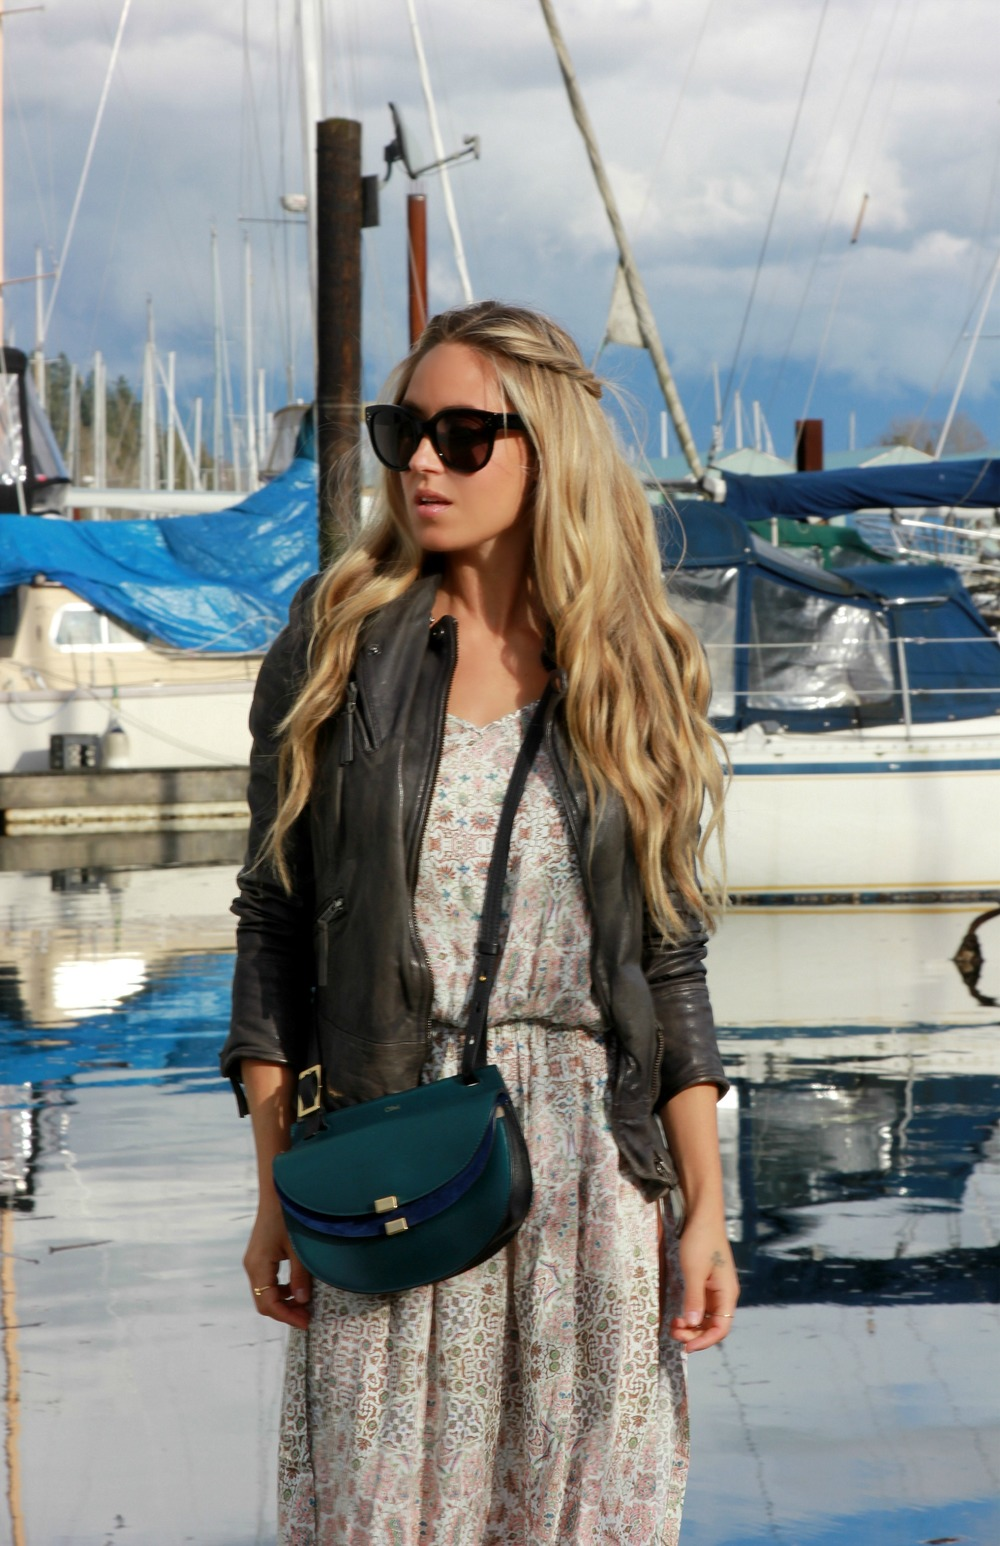 Chloé Bag via Love That Bag Muubaa Jacket, Auguste The Label Dress, Céline Sunglasses, Isabel Marant Boots